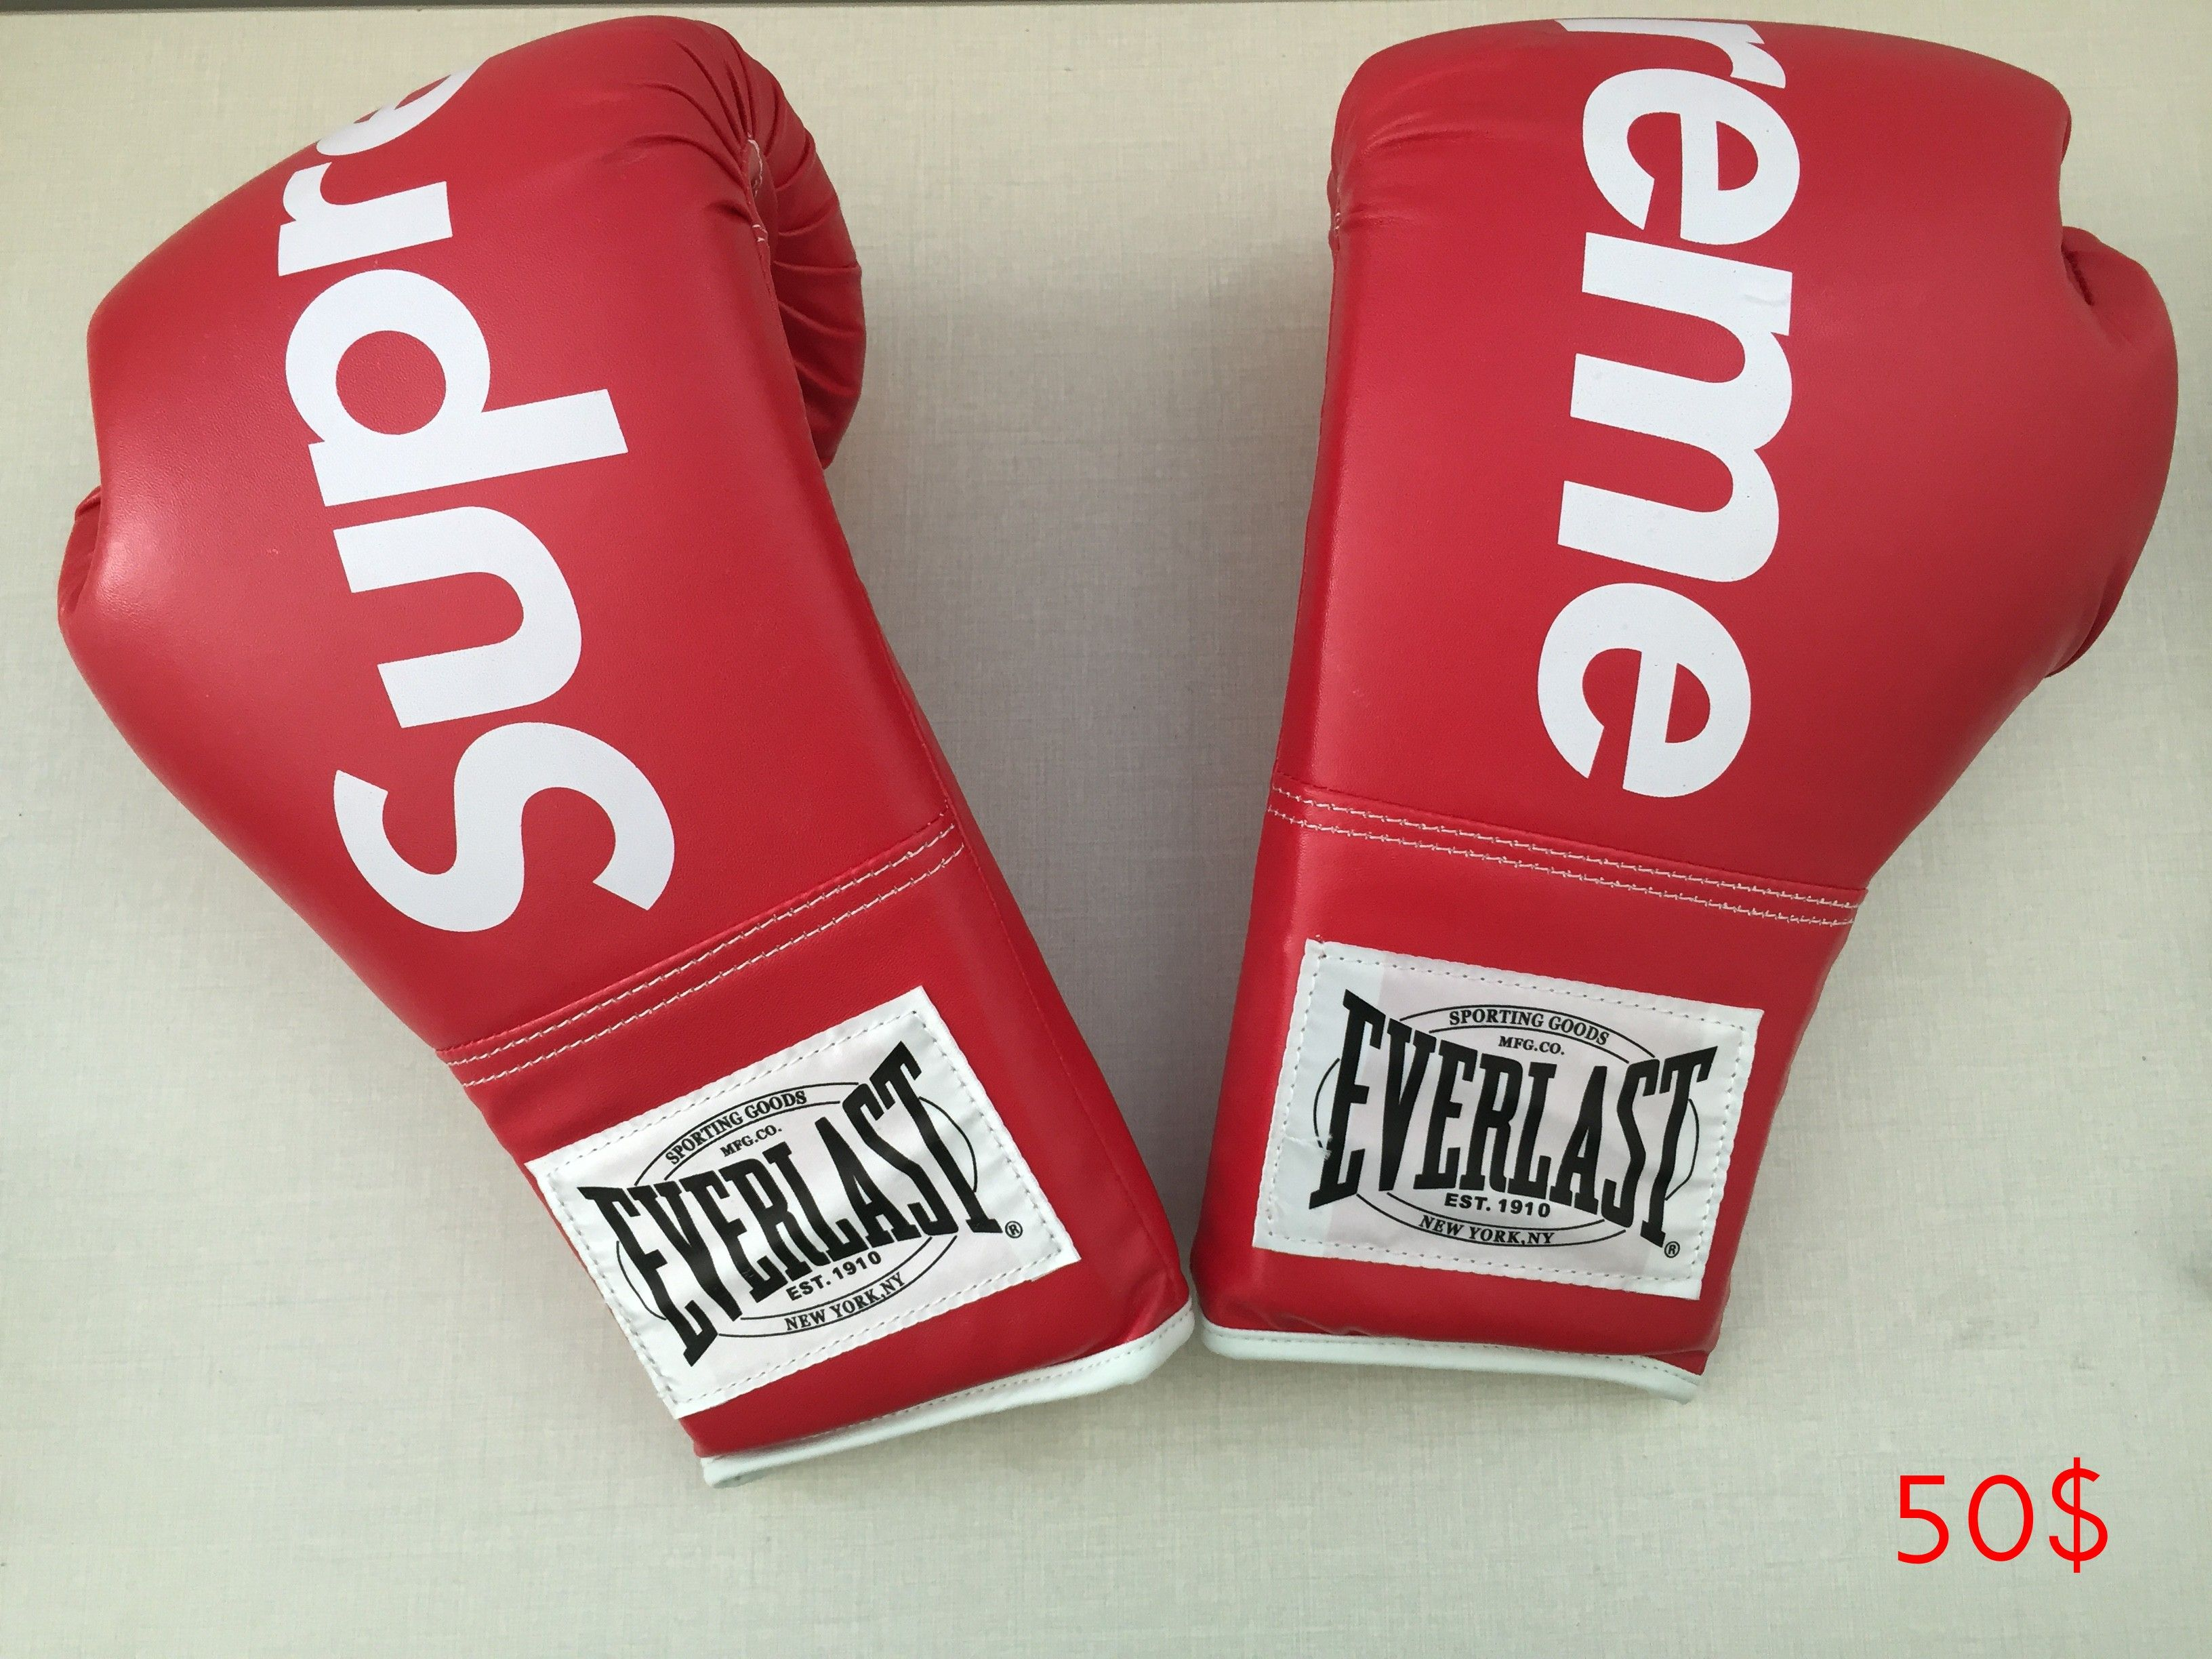 SUPREME BOX EVERLAST BOXING, can using as real boxing ! high